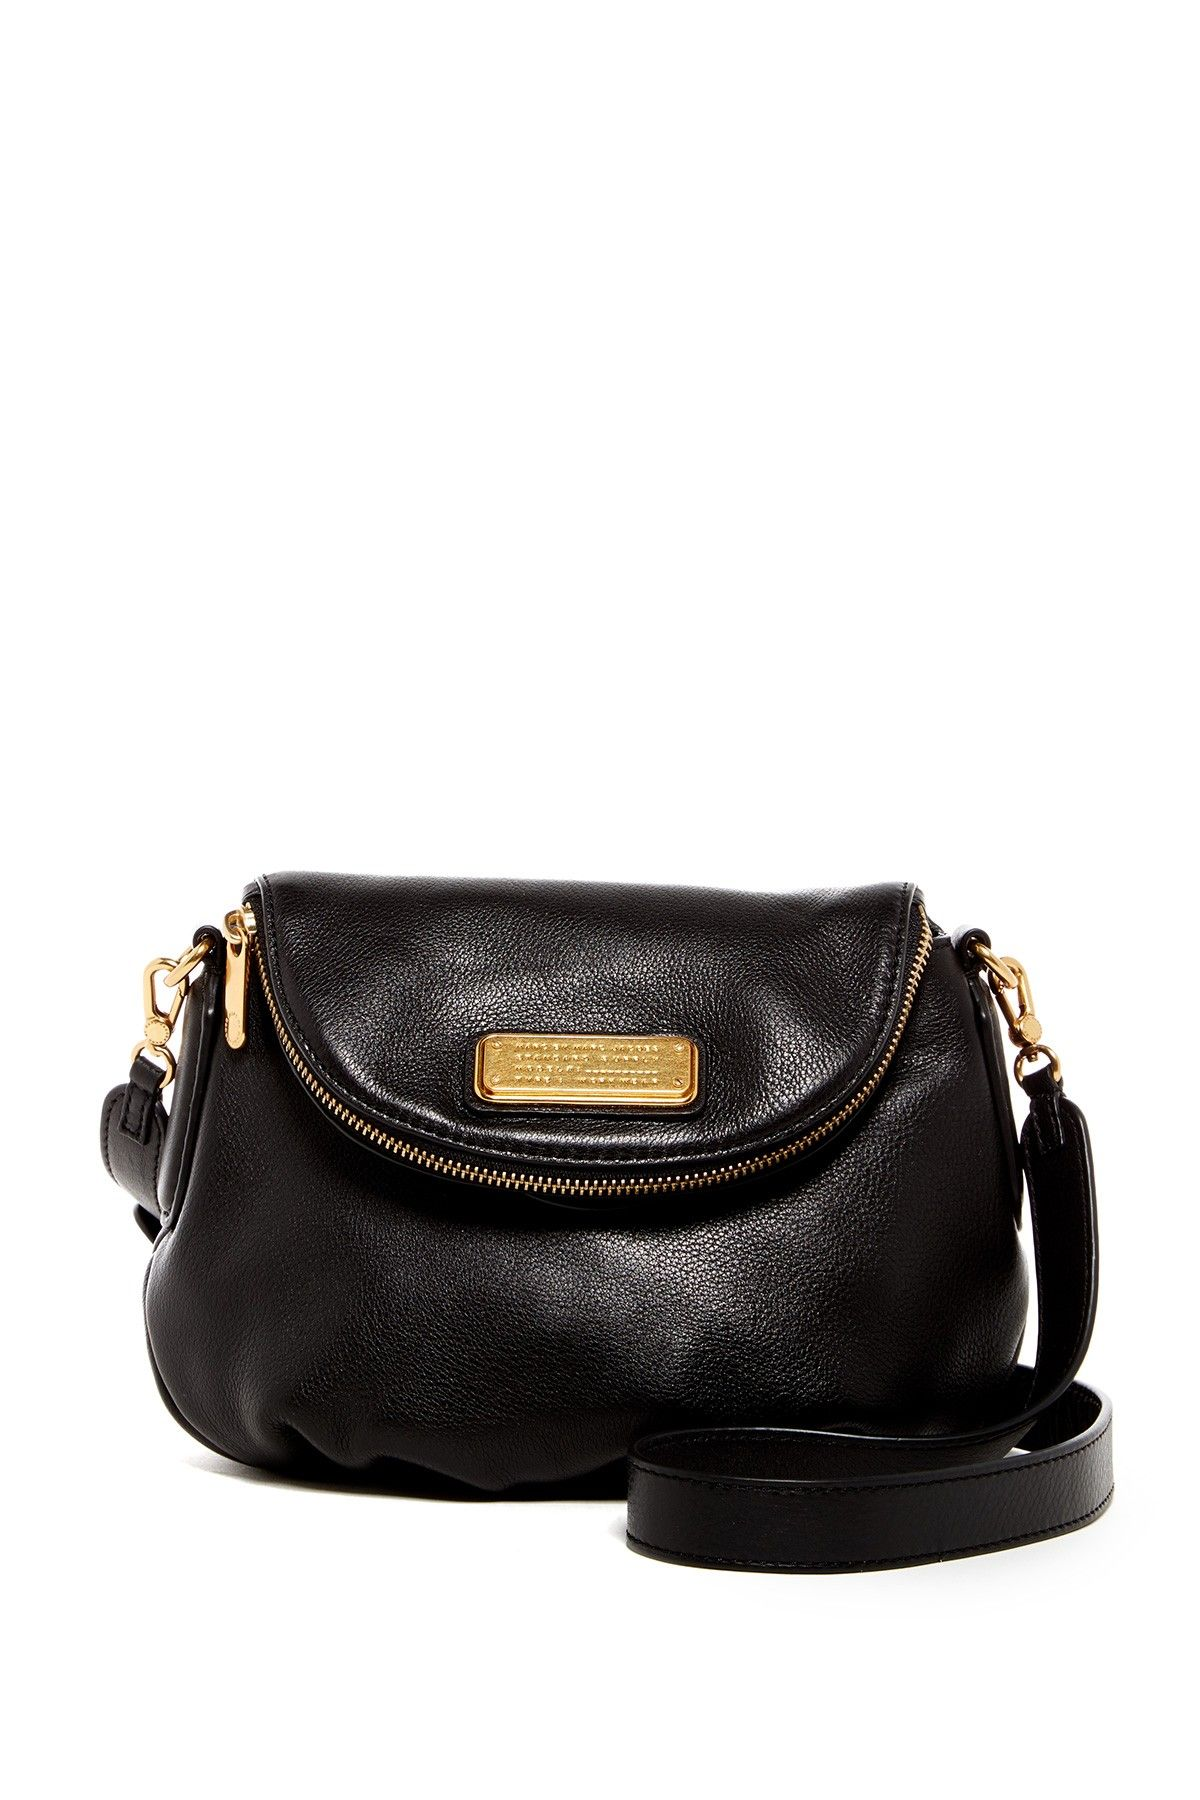 Marc by Marc Jacobs - Mini Natasha Leather Crossbody at Nordstrom Rack.  Free Shipping on orders over  100.